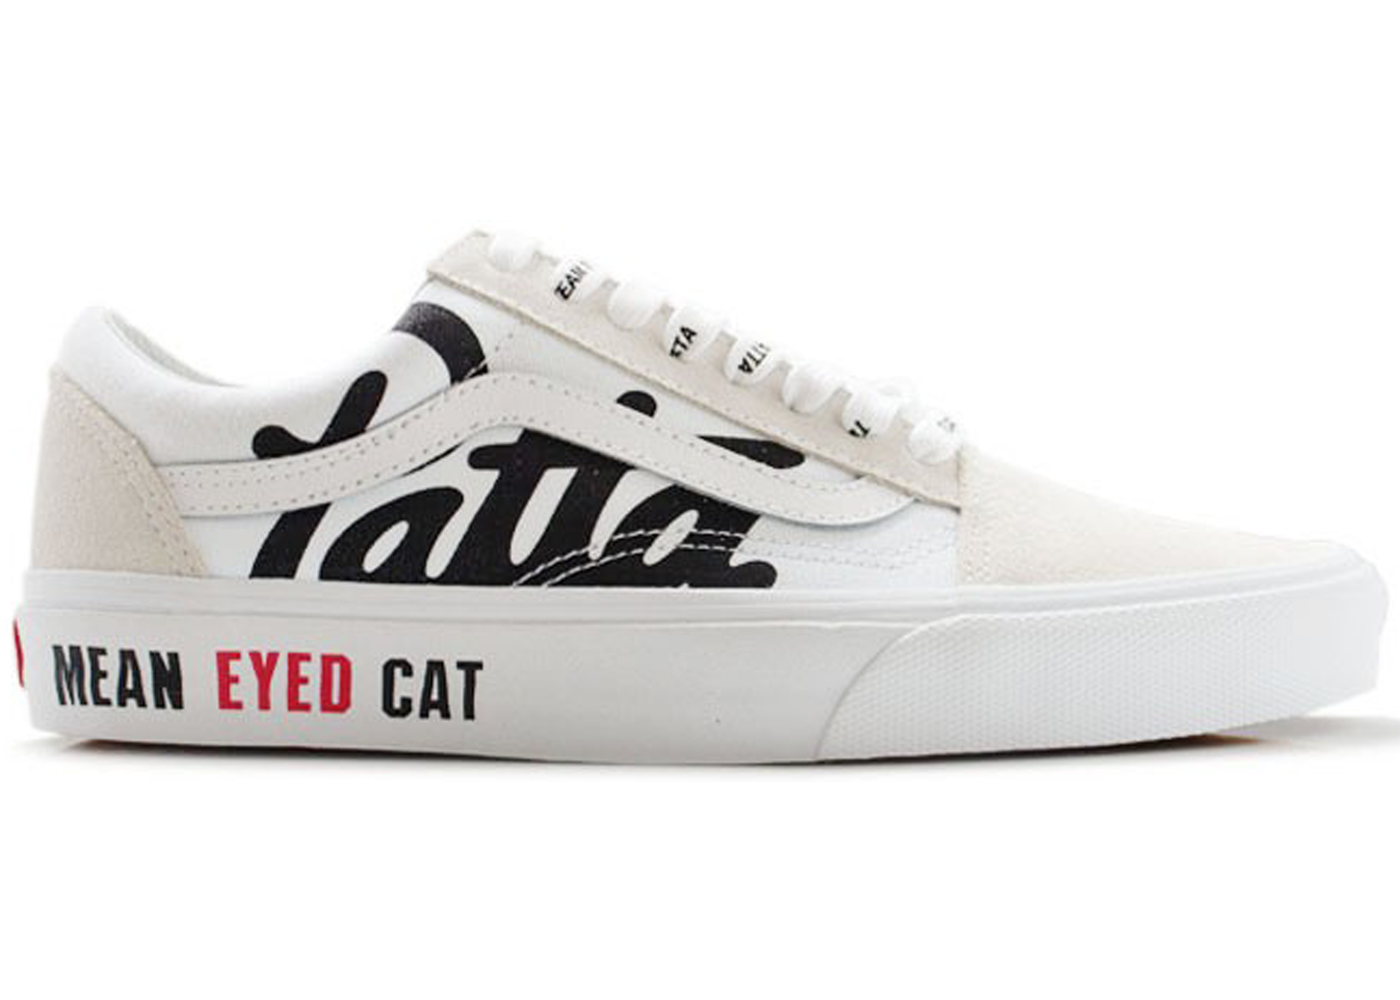 Vans Old Skool Patta Mean Eyed Cat White in 2019  7f844a528